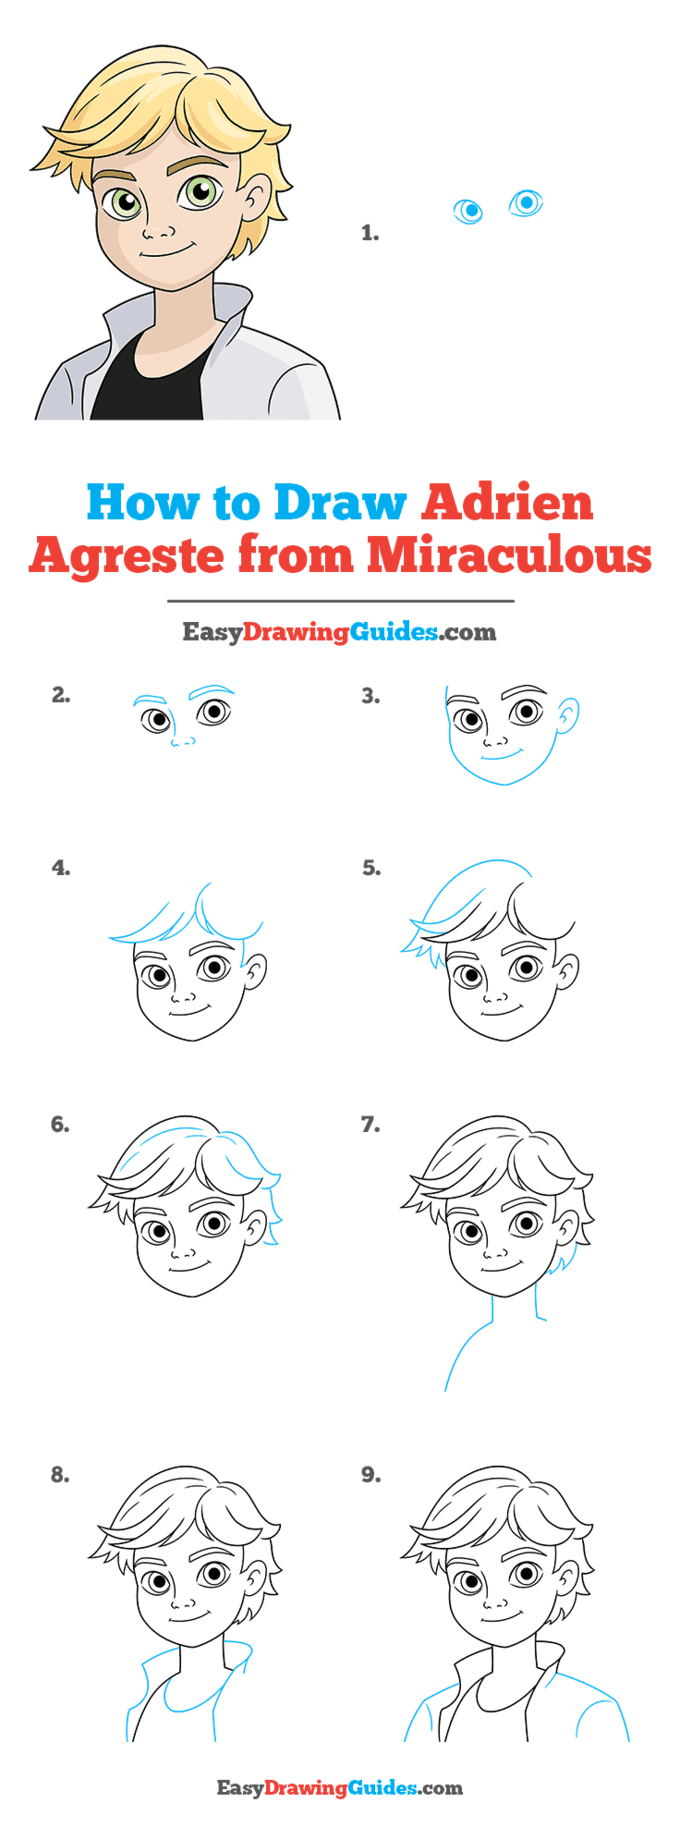 how to draw adrien agreste from miraculous step by step tutorial image